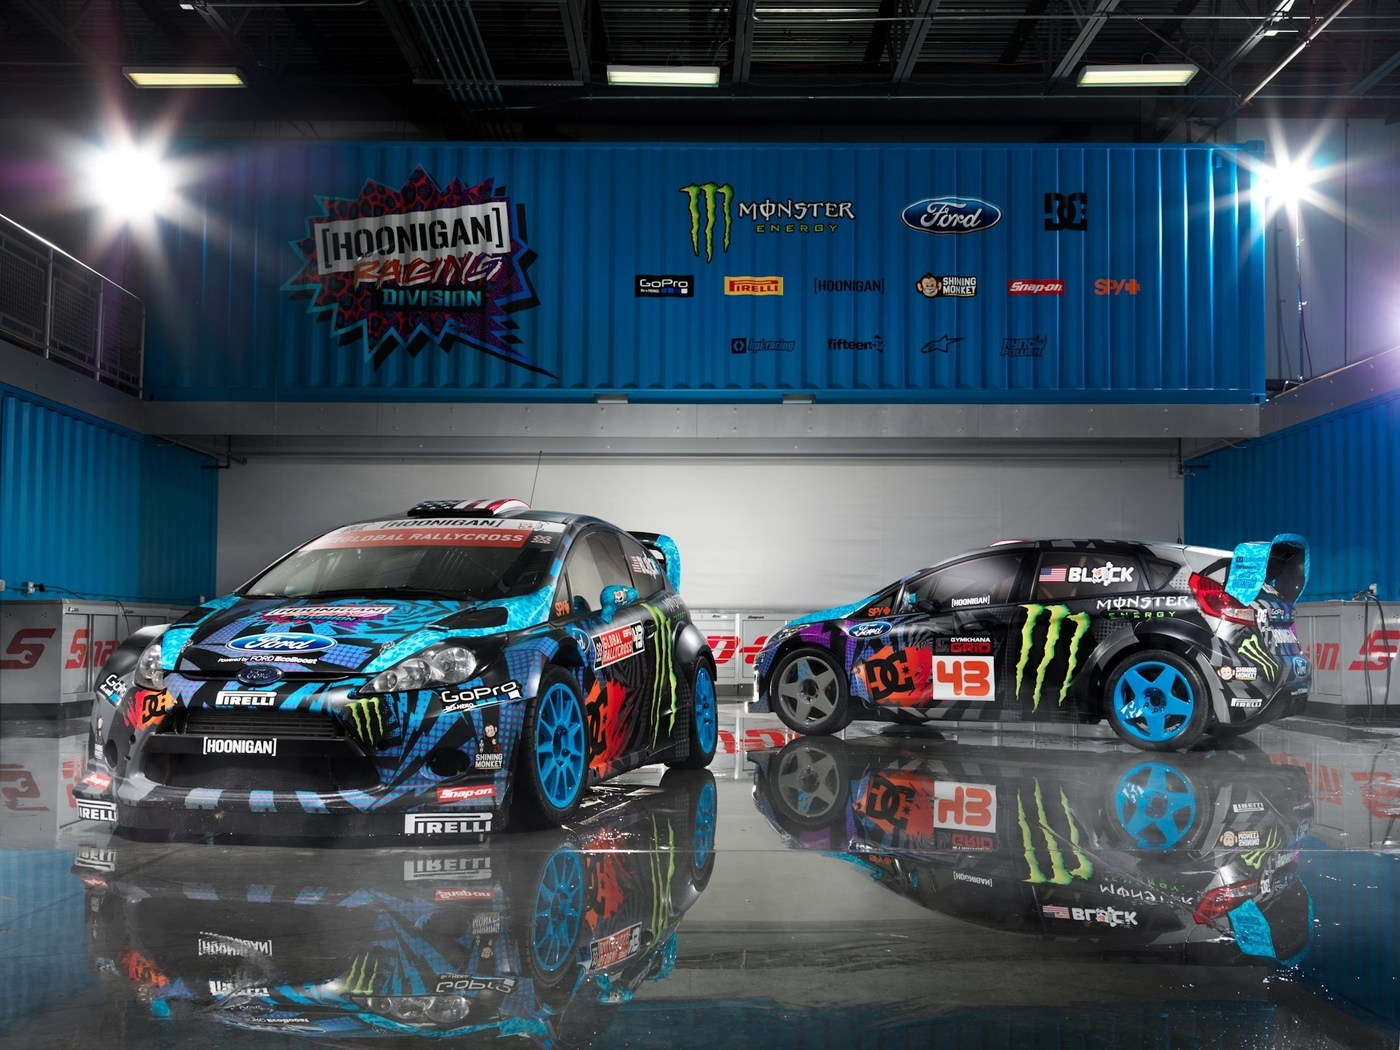 fiesta, rs, rally, ken block, rallycross, ford, wrc